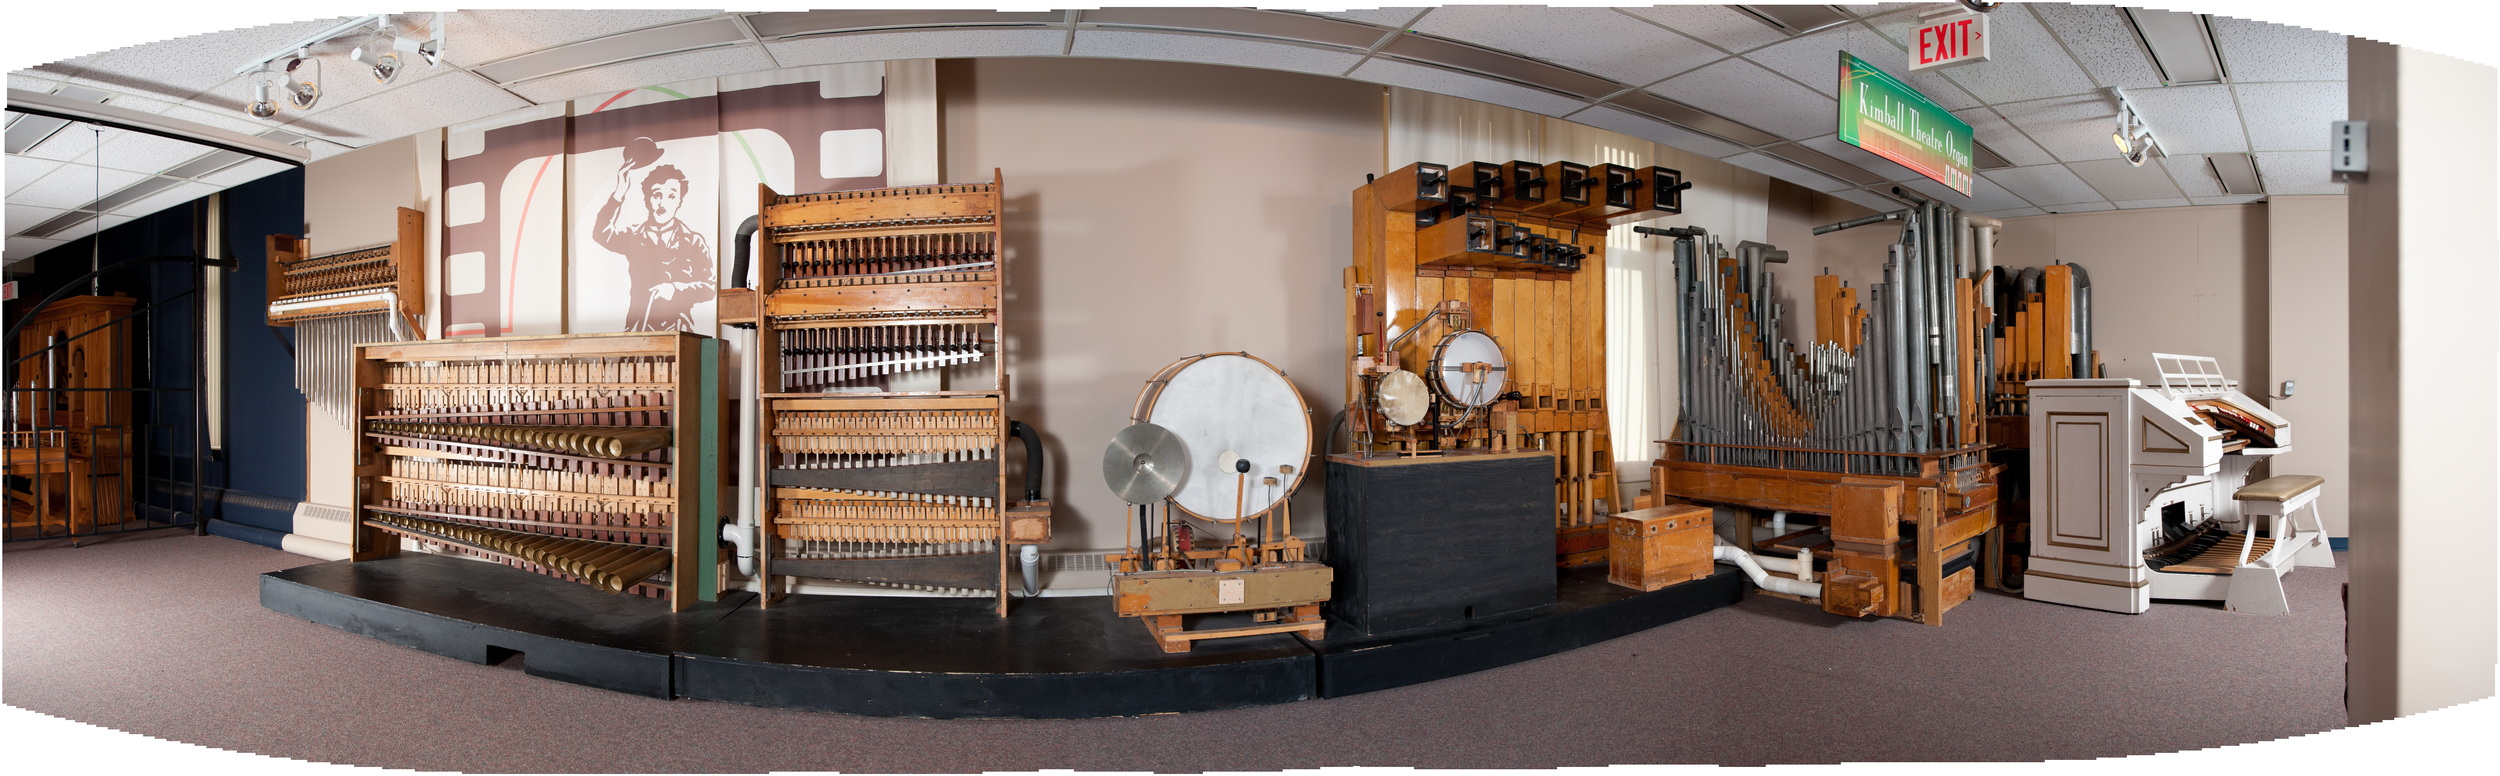 A sample of the diversity of keyboard instruments in the National Music Centre's collection. (photo credit: National Music Centre)